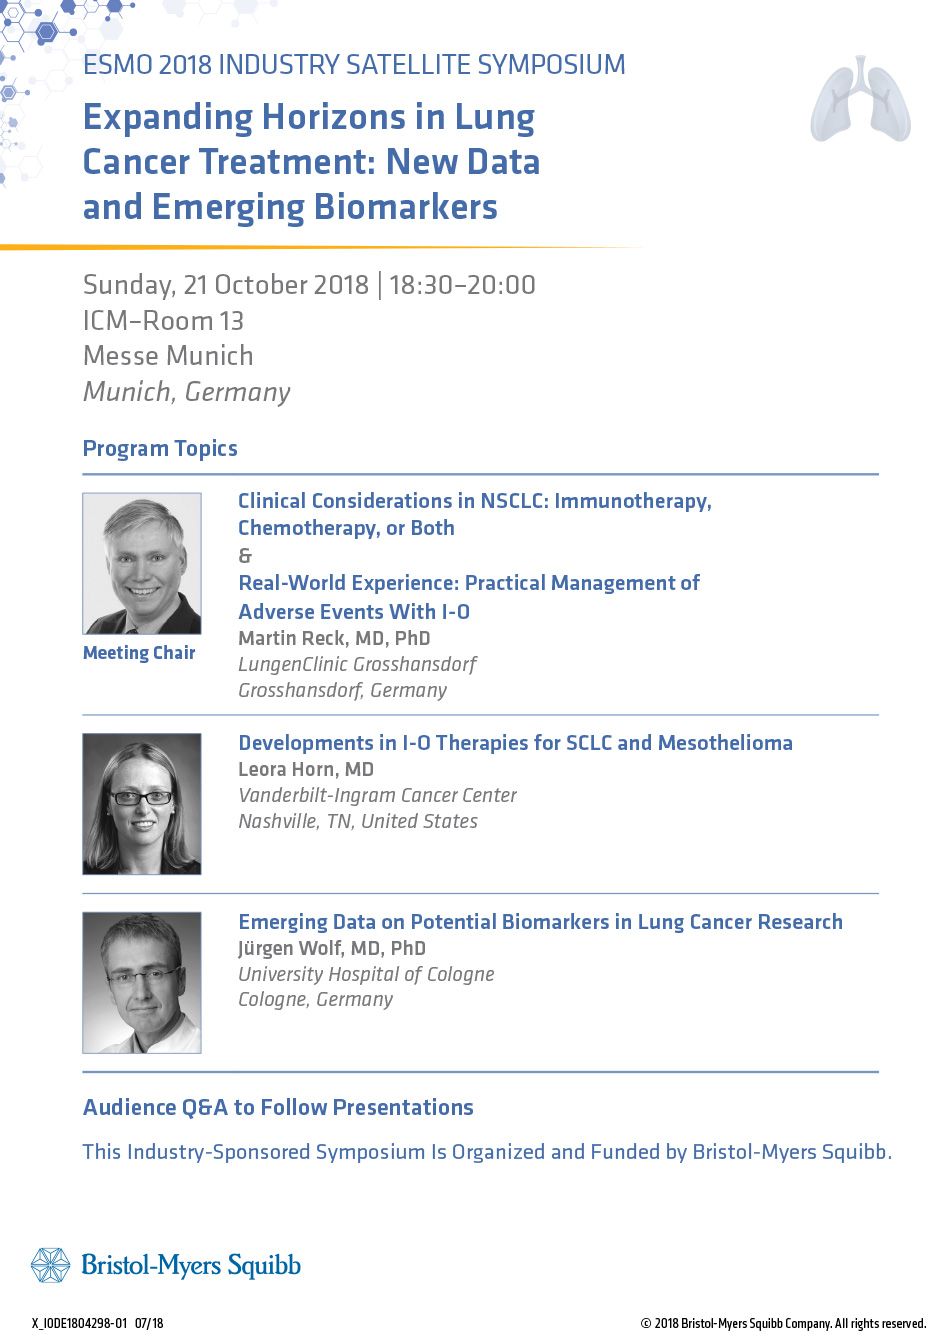 Expanding Horizons in Lung Cancer Treatment: New Data and Emerging Biomarkers